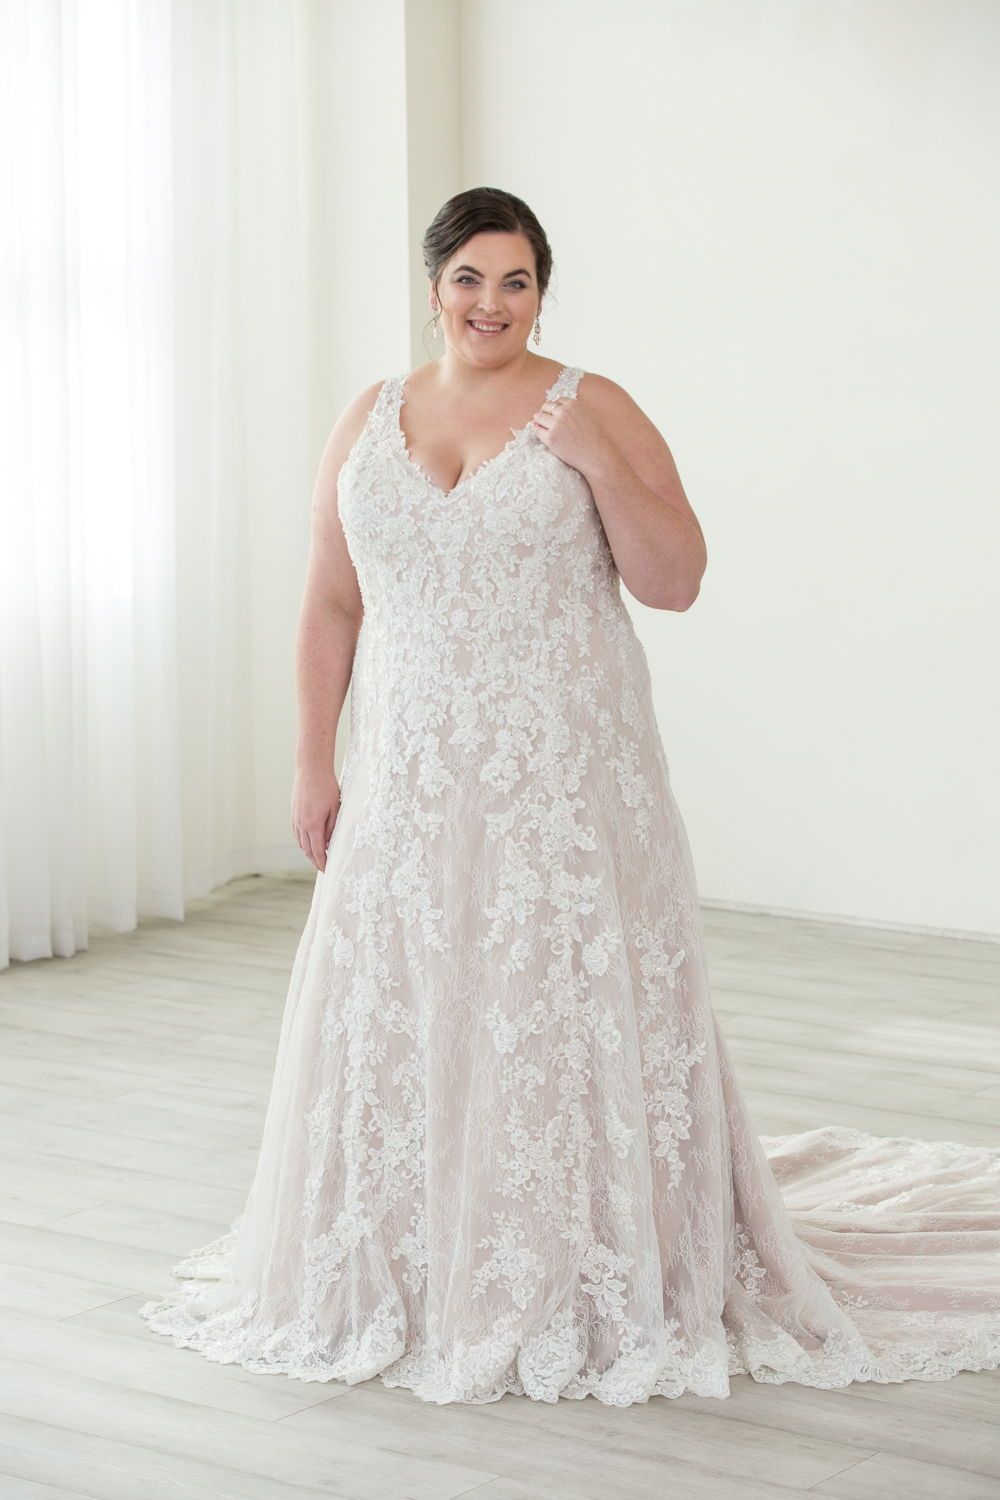 7c5e6b1e2e Plus Size wedding dress - A-line Justin Alexander wedding gown. Portland